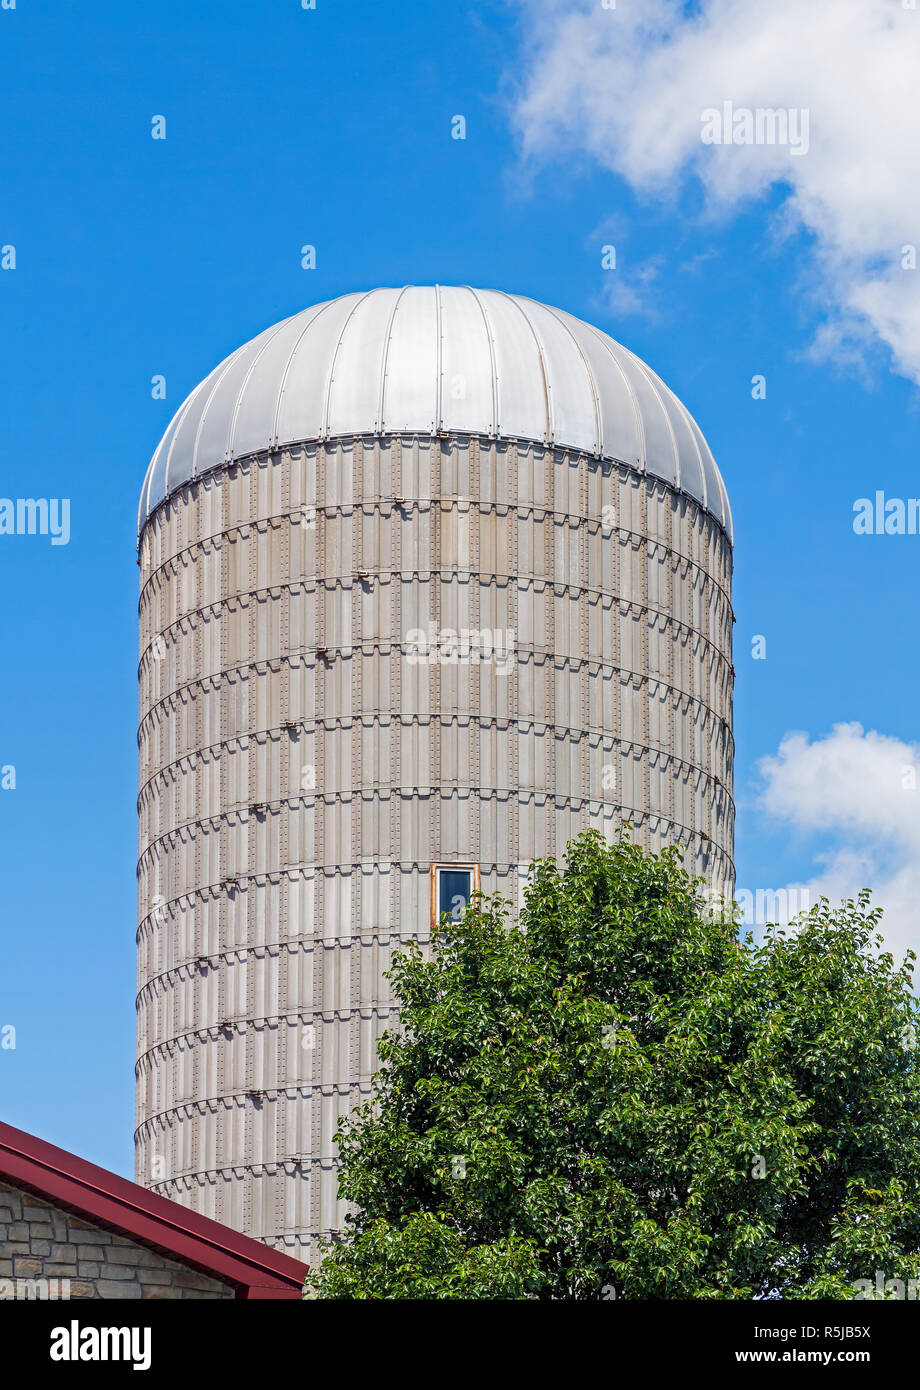 A silo tower stands against a cloudy blue sky on a Midwestern farm. Stock Photo